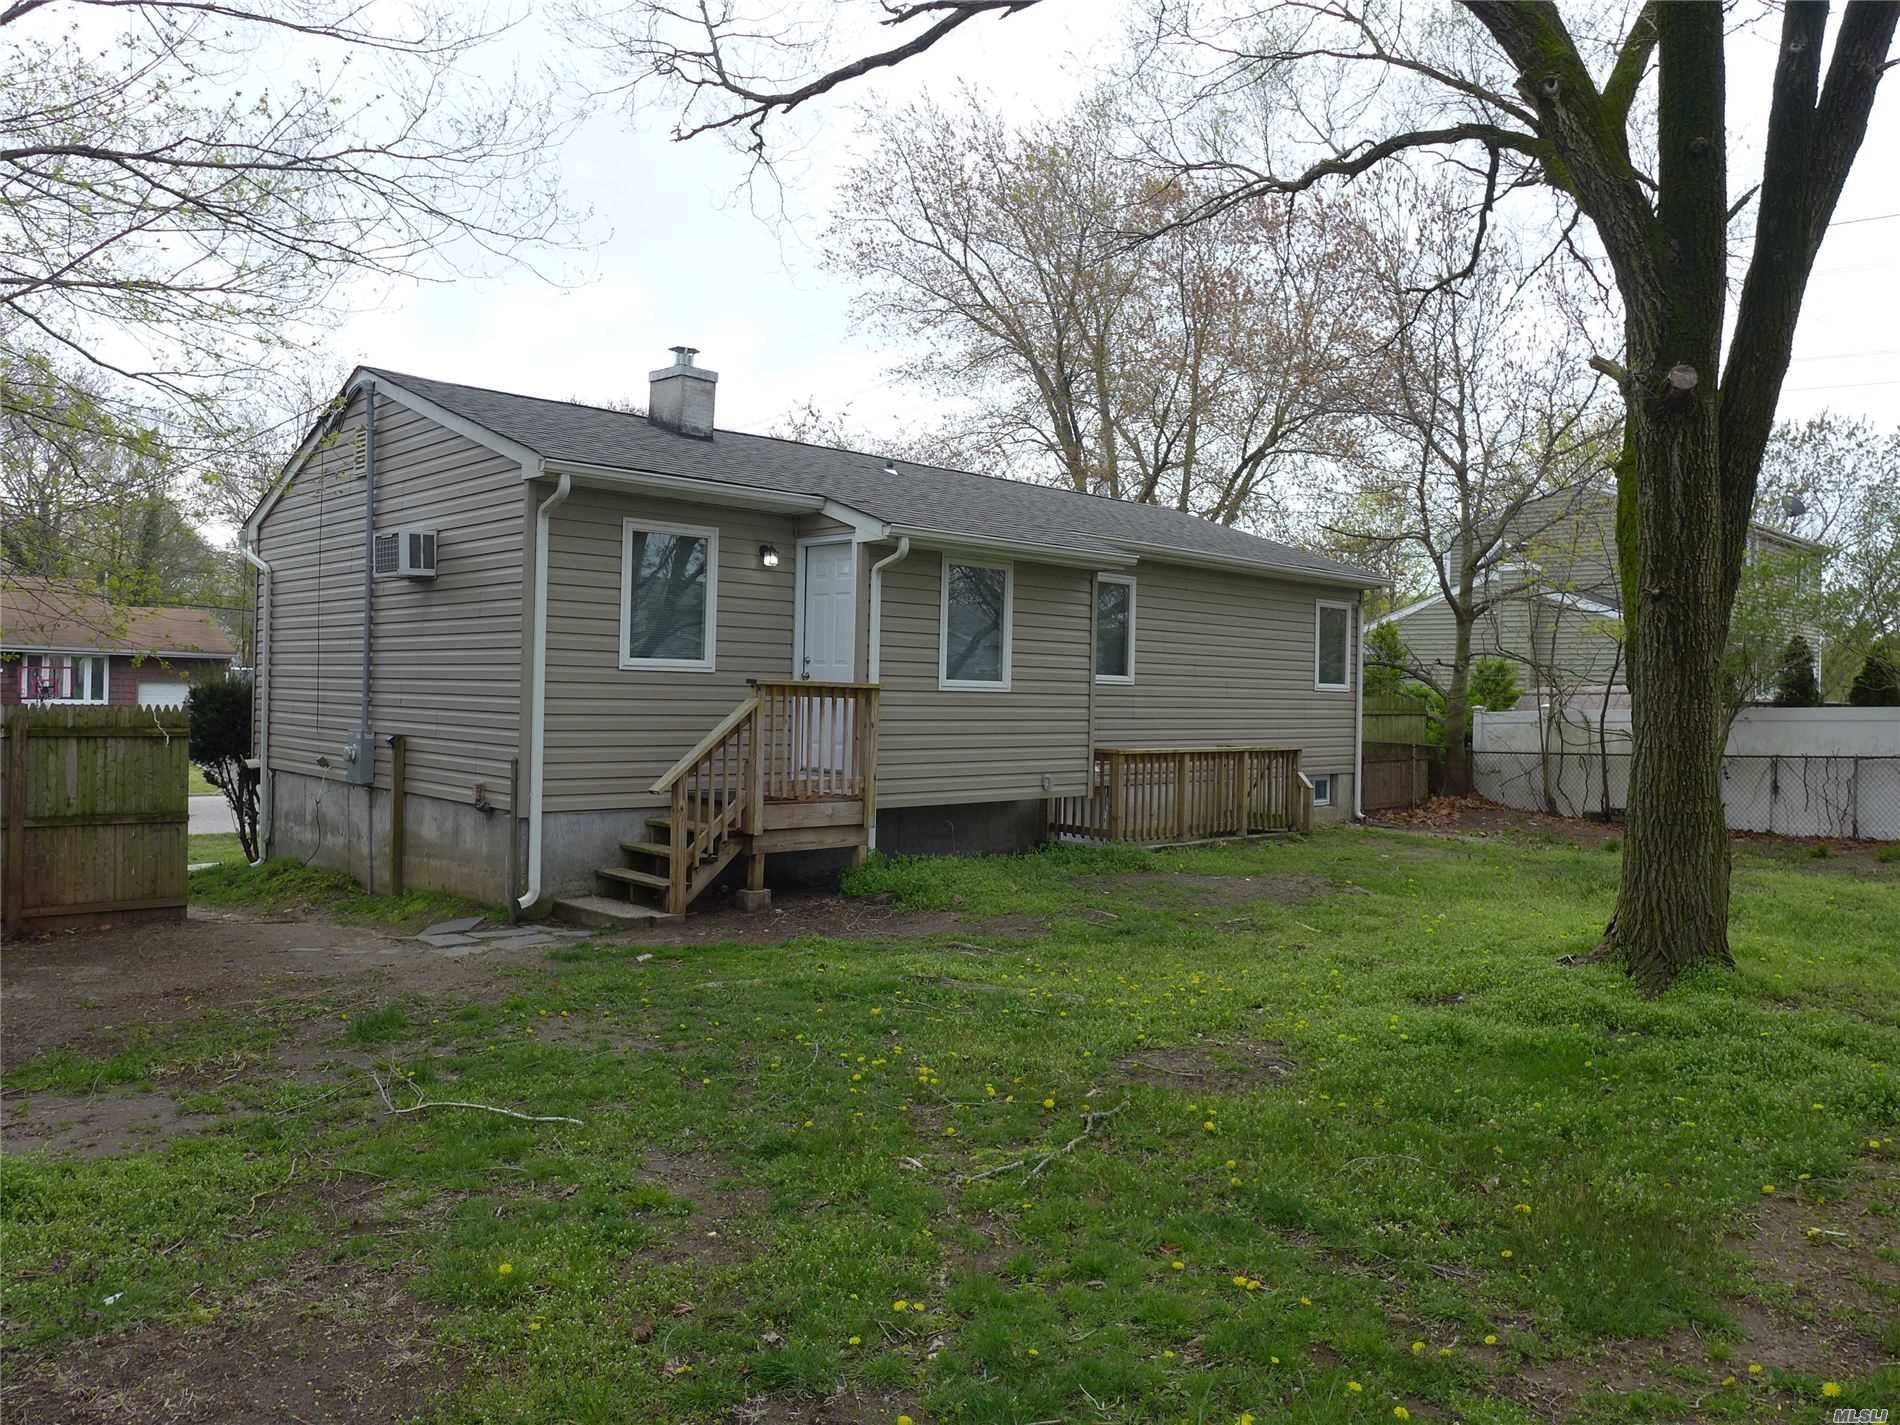 2904 Heather Ave, Medford, NY 11763 - MLS#: 3218120